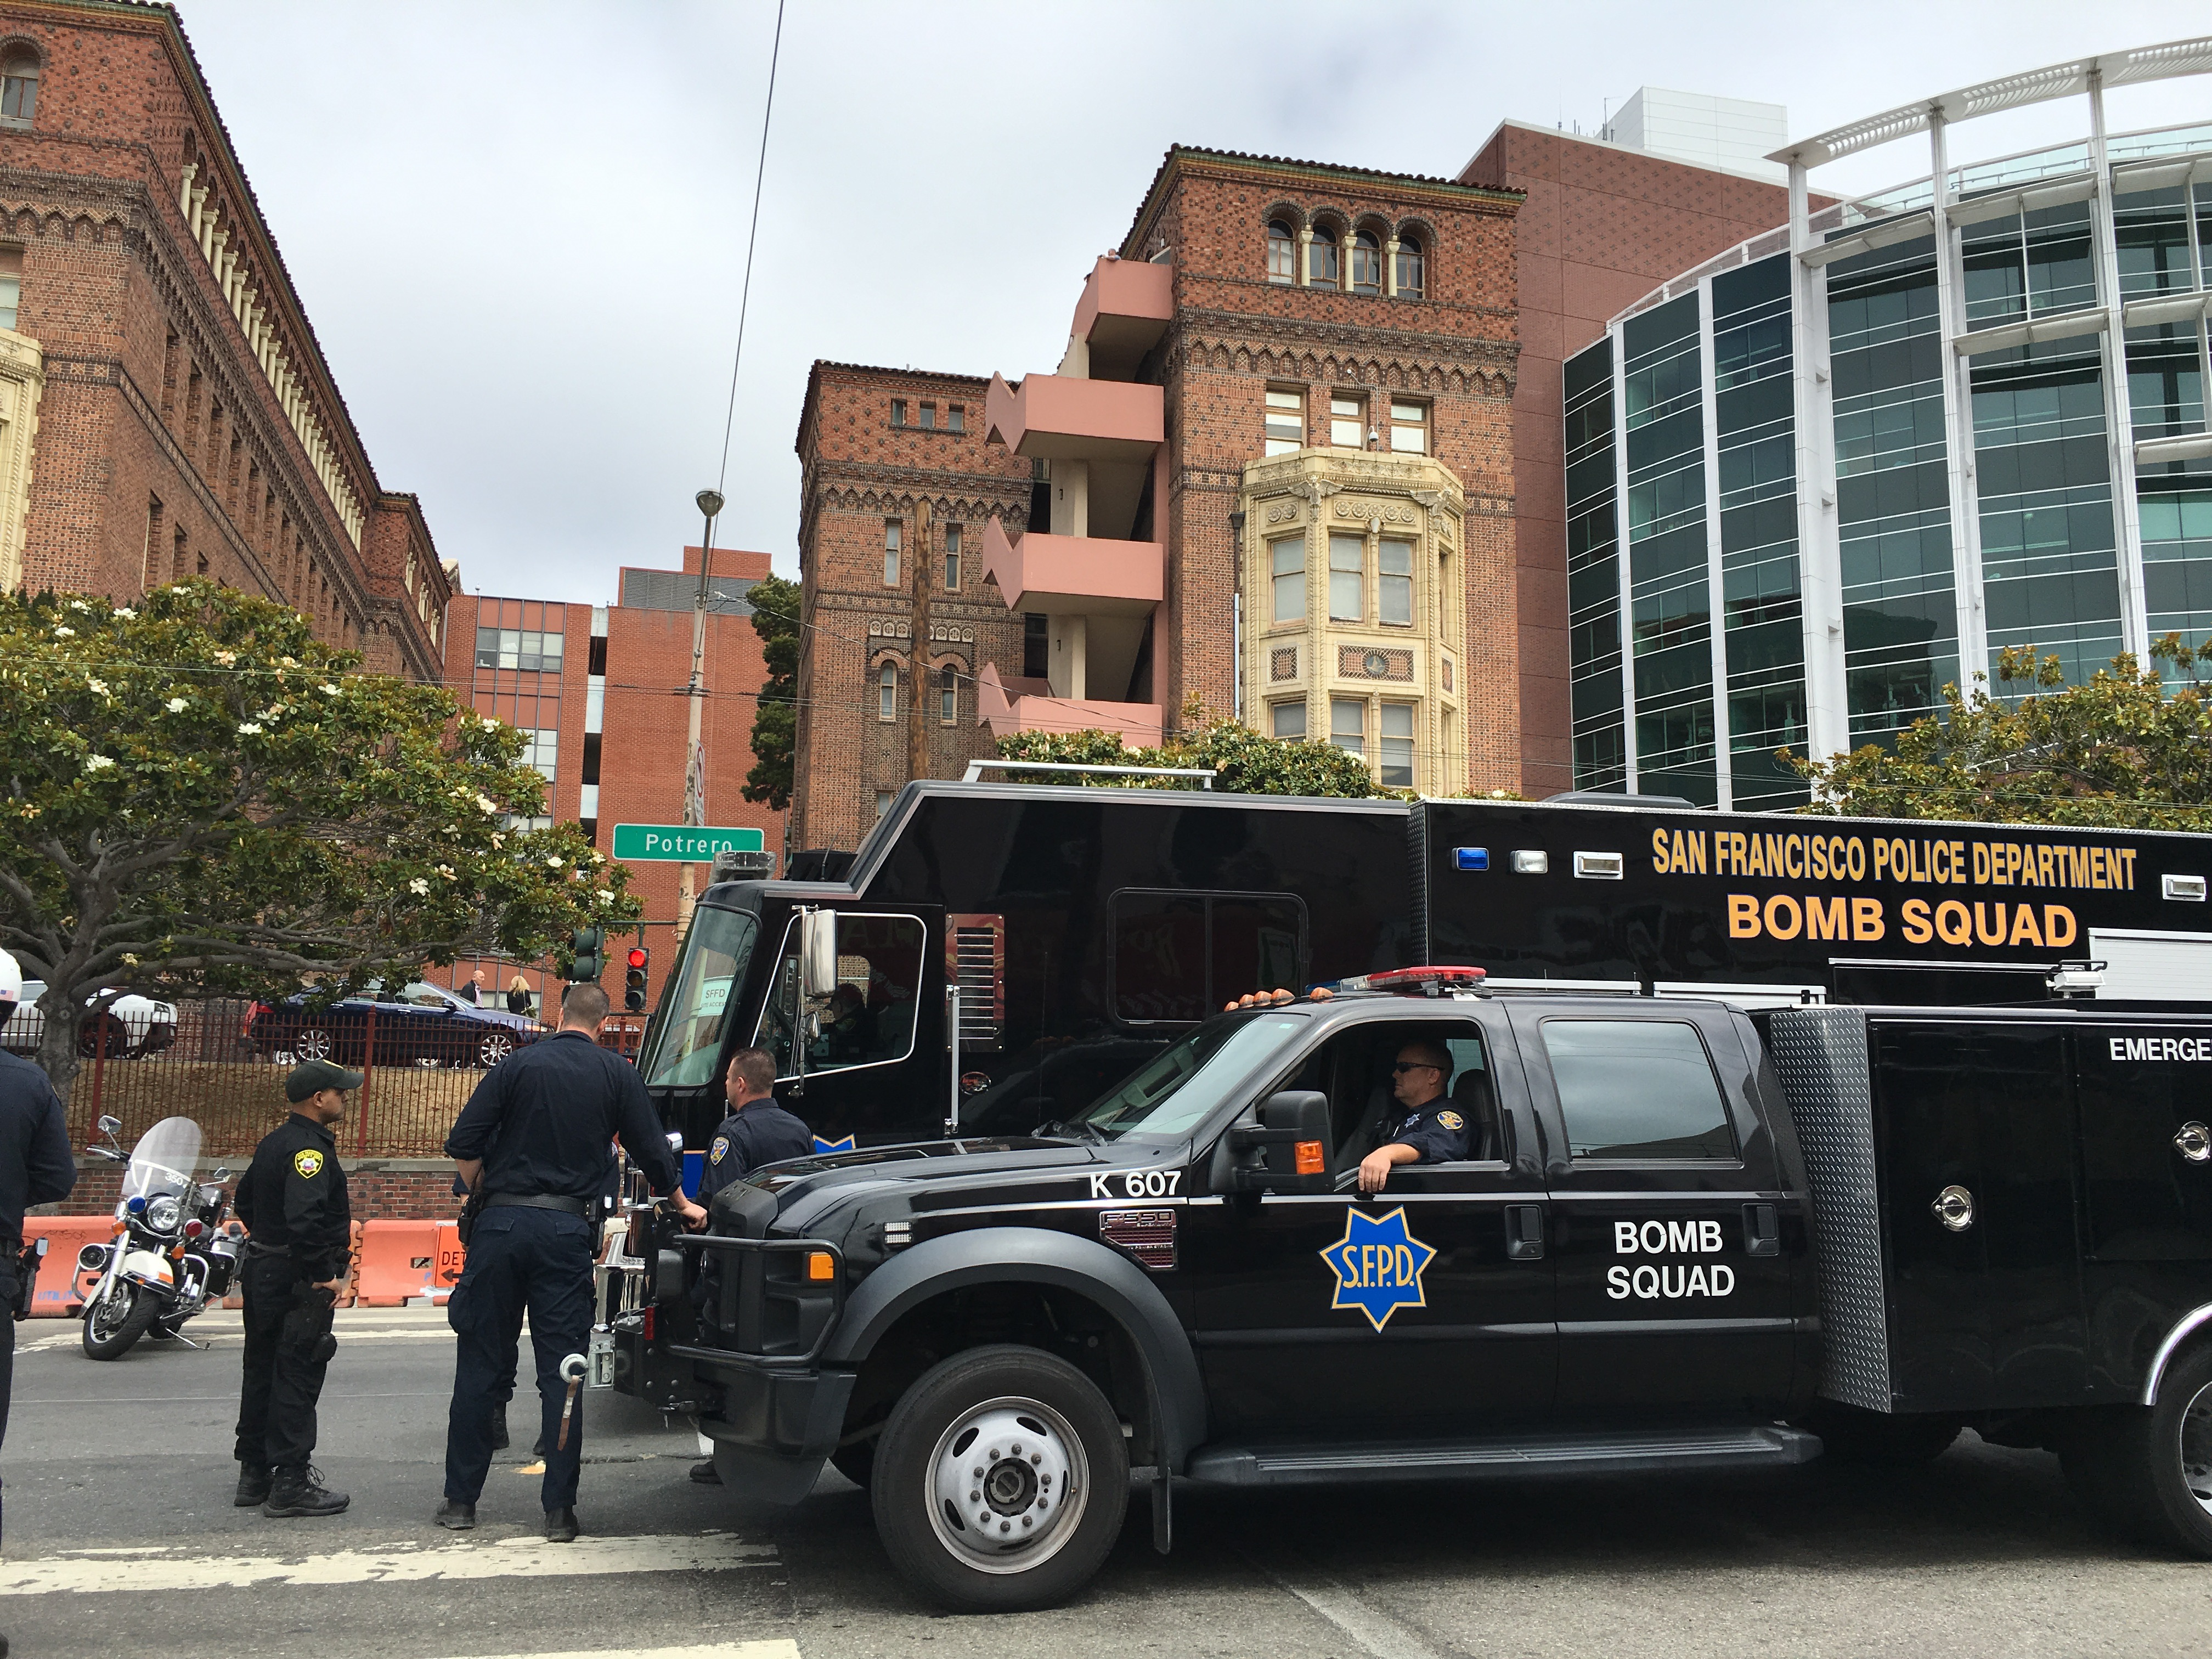 Bomb squad on Potrero Avenue outside San Francisco General Hospital for the firecracker incident on July 7, 2016. Photo by Joe Rivano Barros.